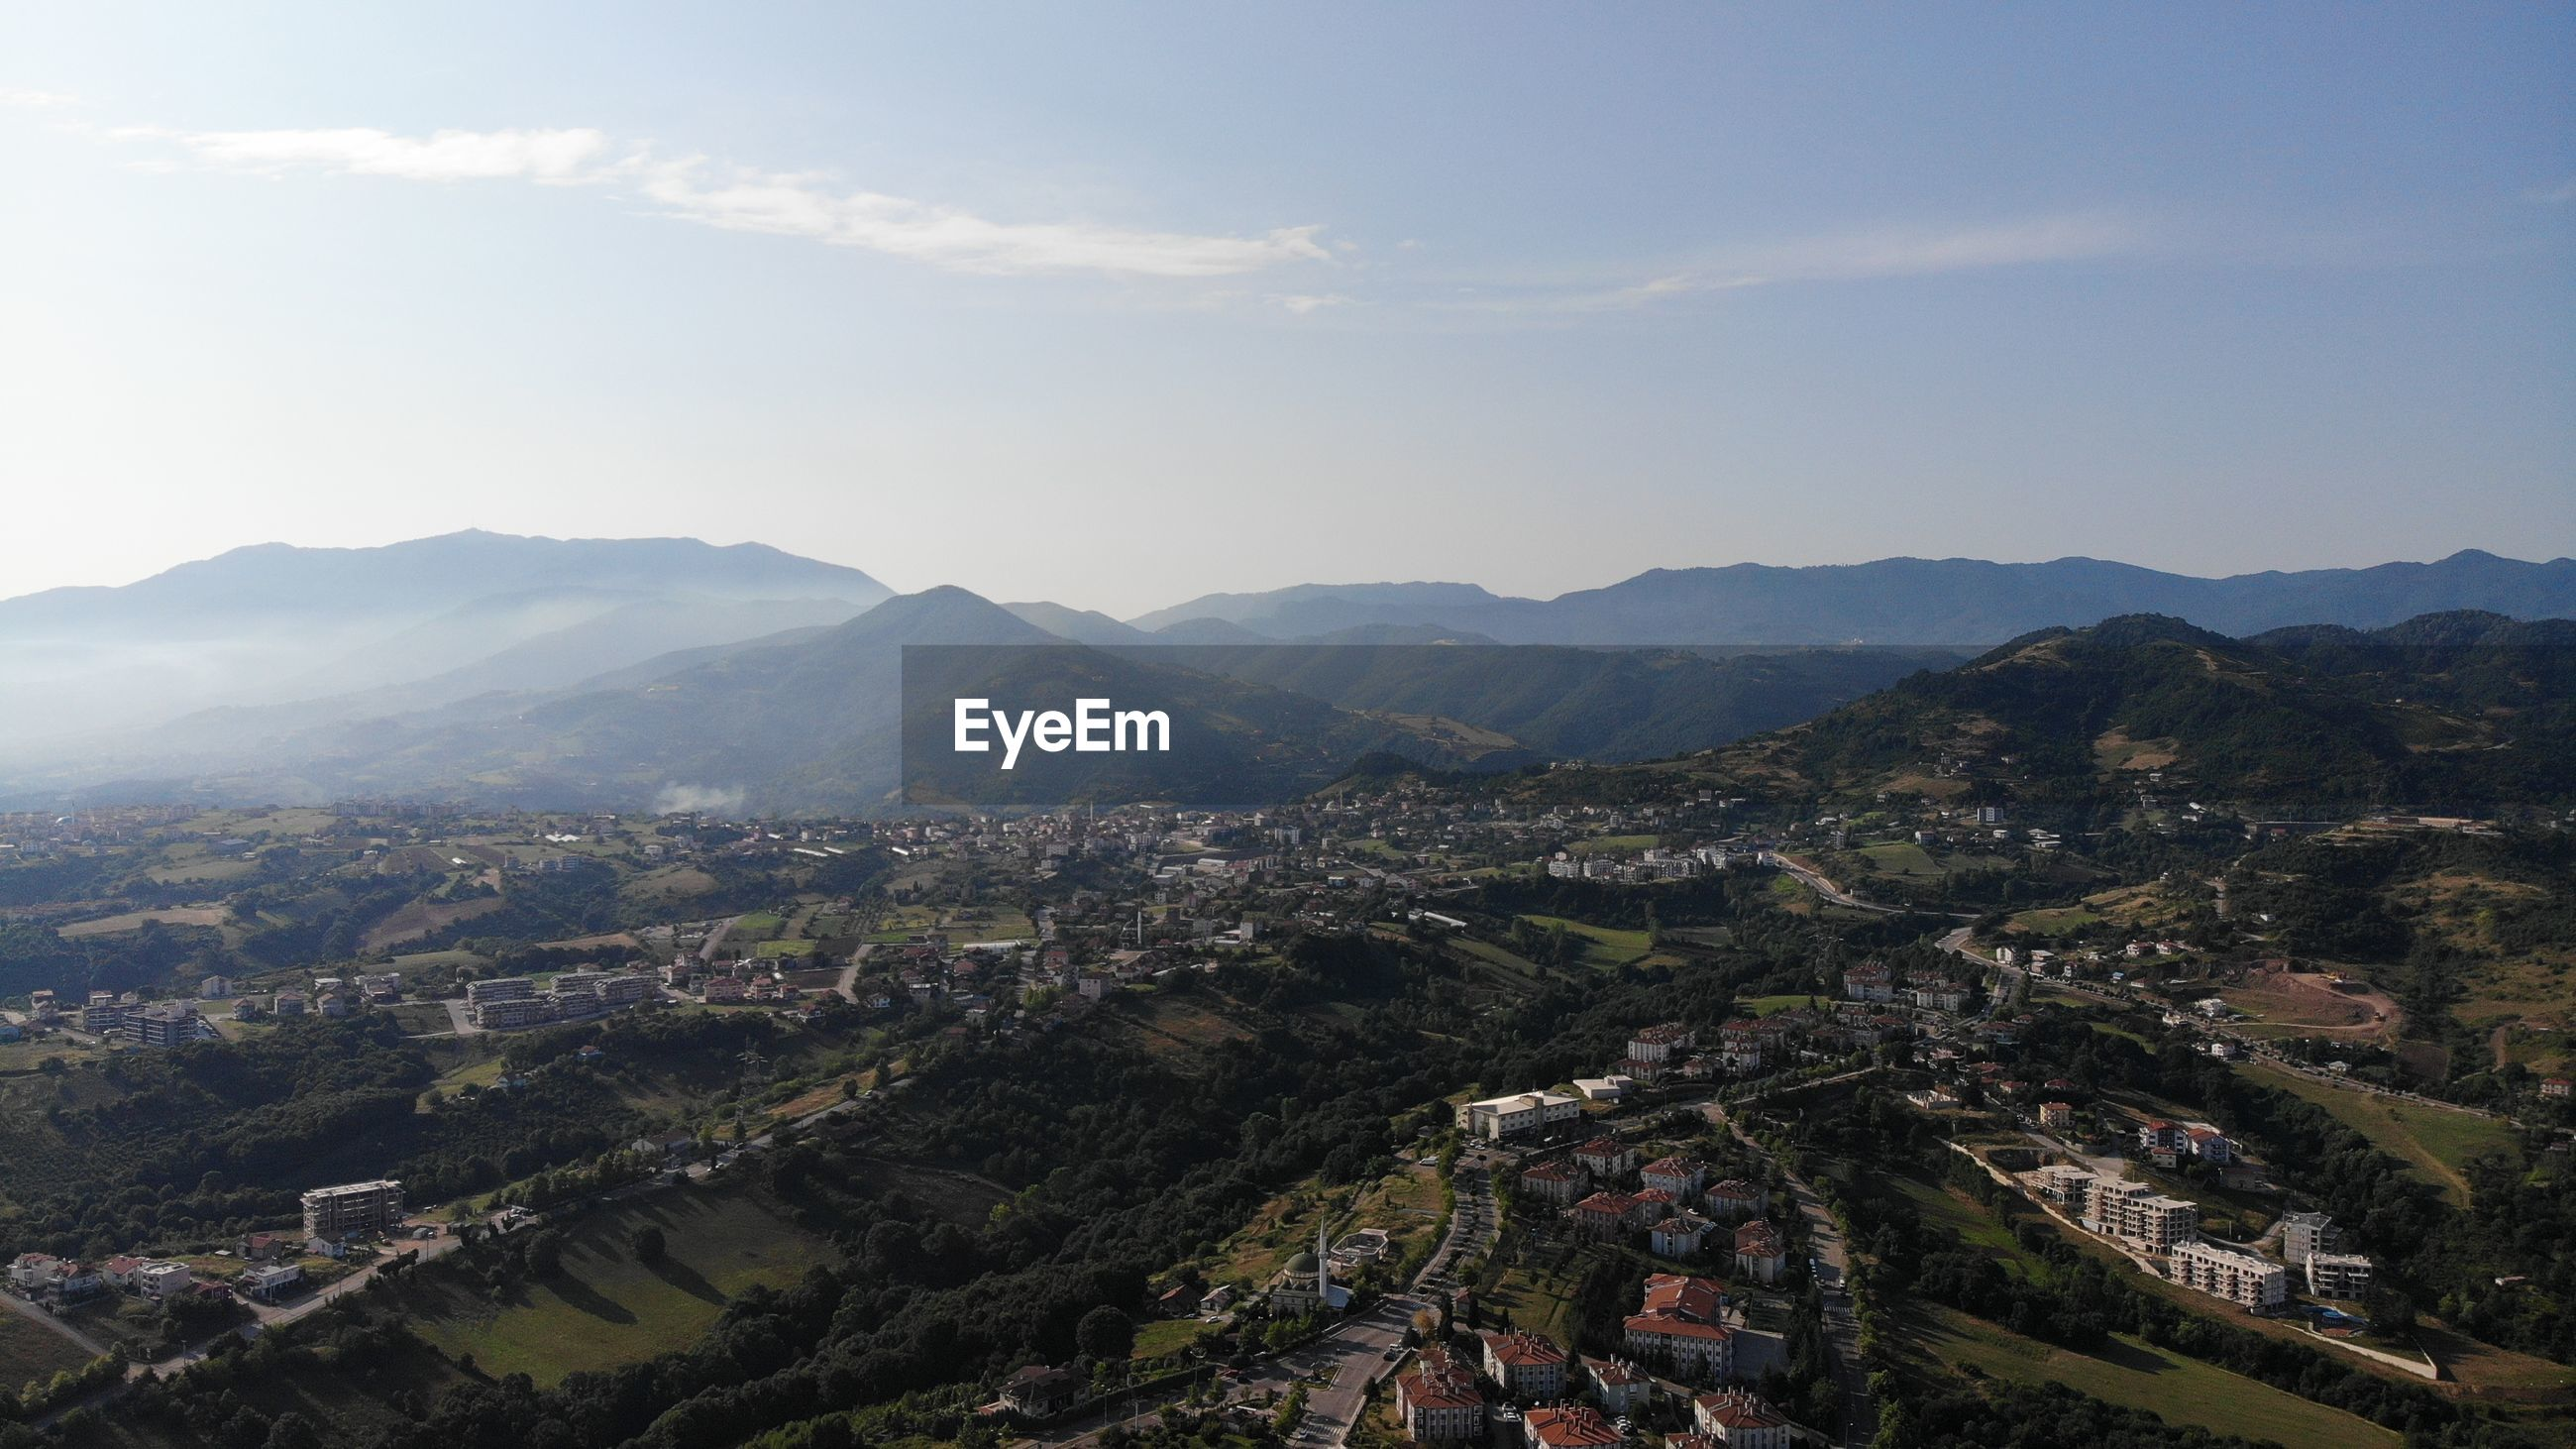 HIGH ANGLE VIEW OF TOWNSCAPE BY MOUNTAINS AGAINST SKY